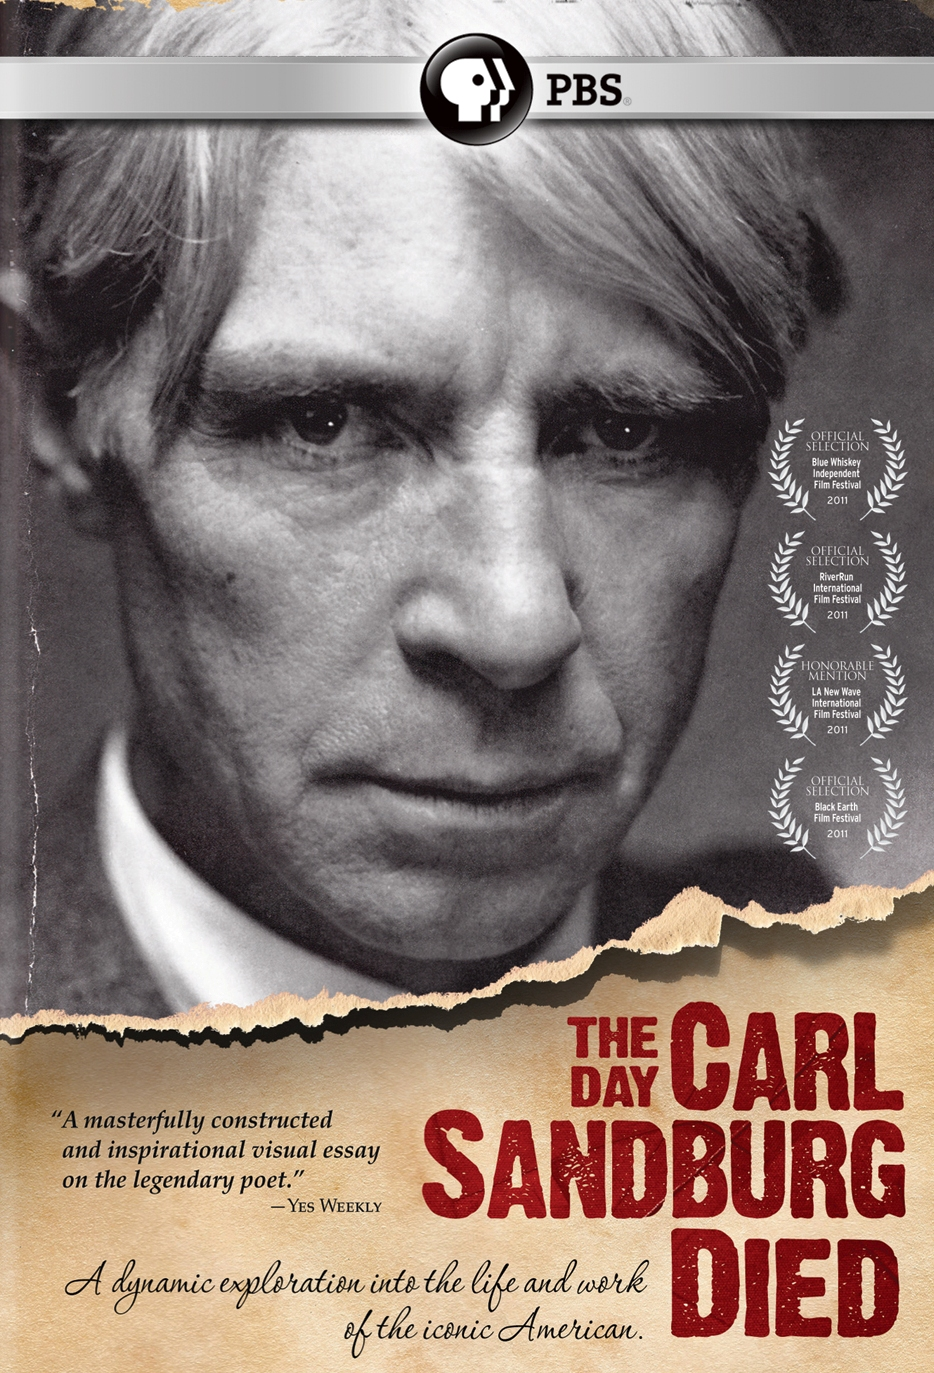 the works of carl sandburg and its effect on american poetry